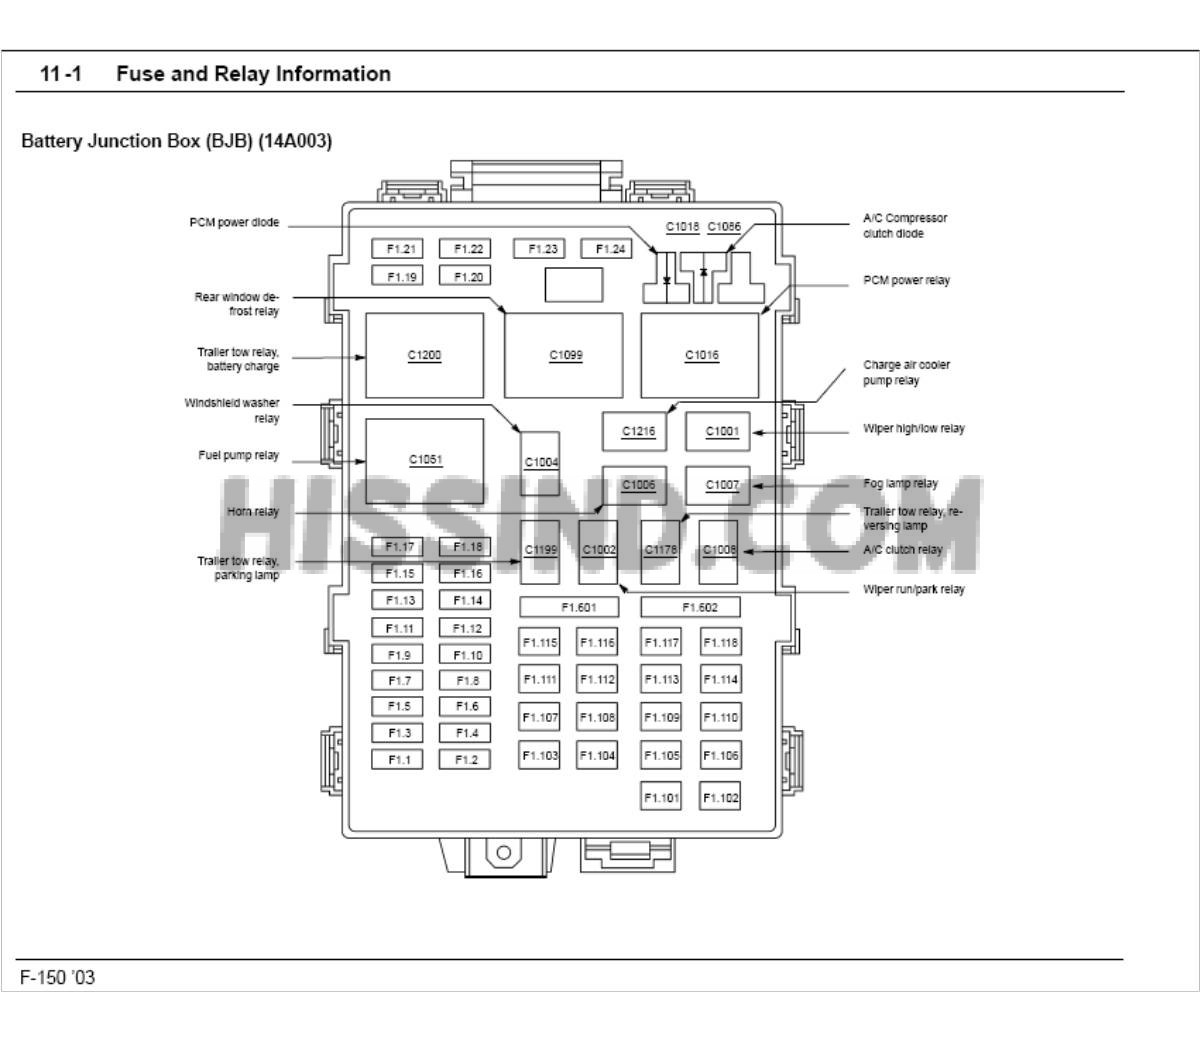 1996 ford f 150 fuse wiring diagram 1996 ford f 150 fuse box diagram - wiring diagram 1996 ford f 150 starter wiring diagram